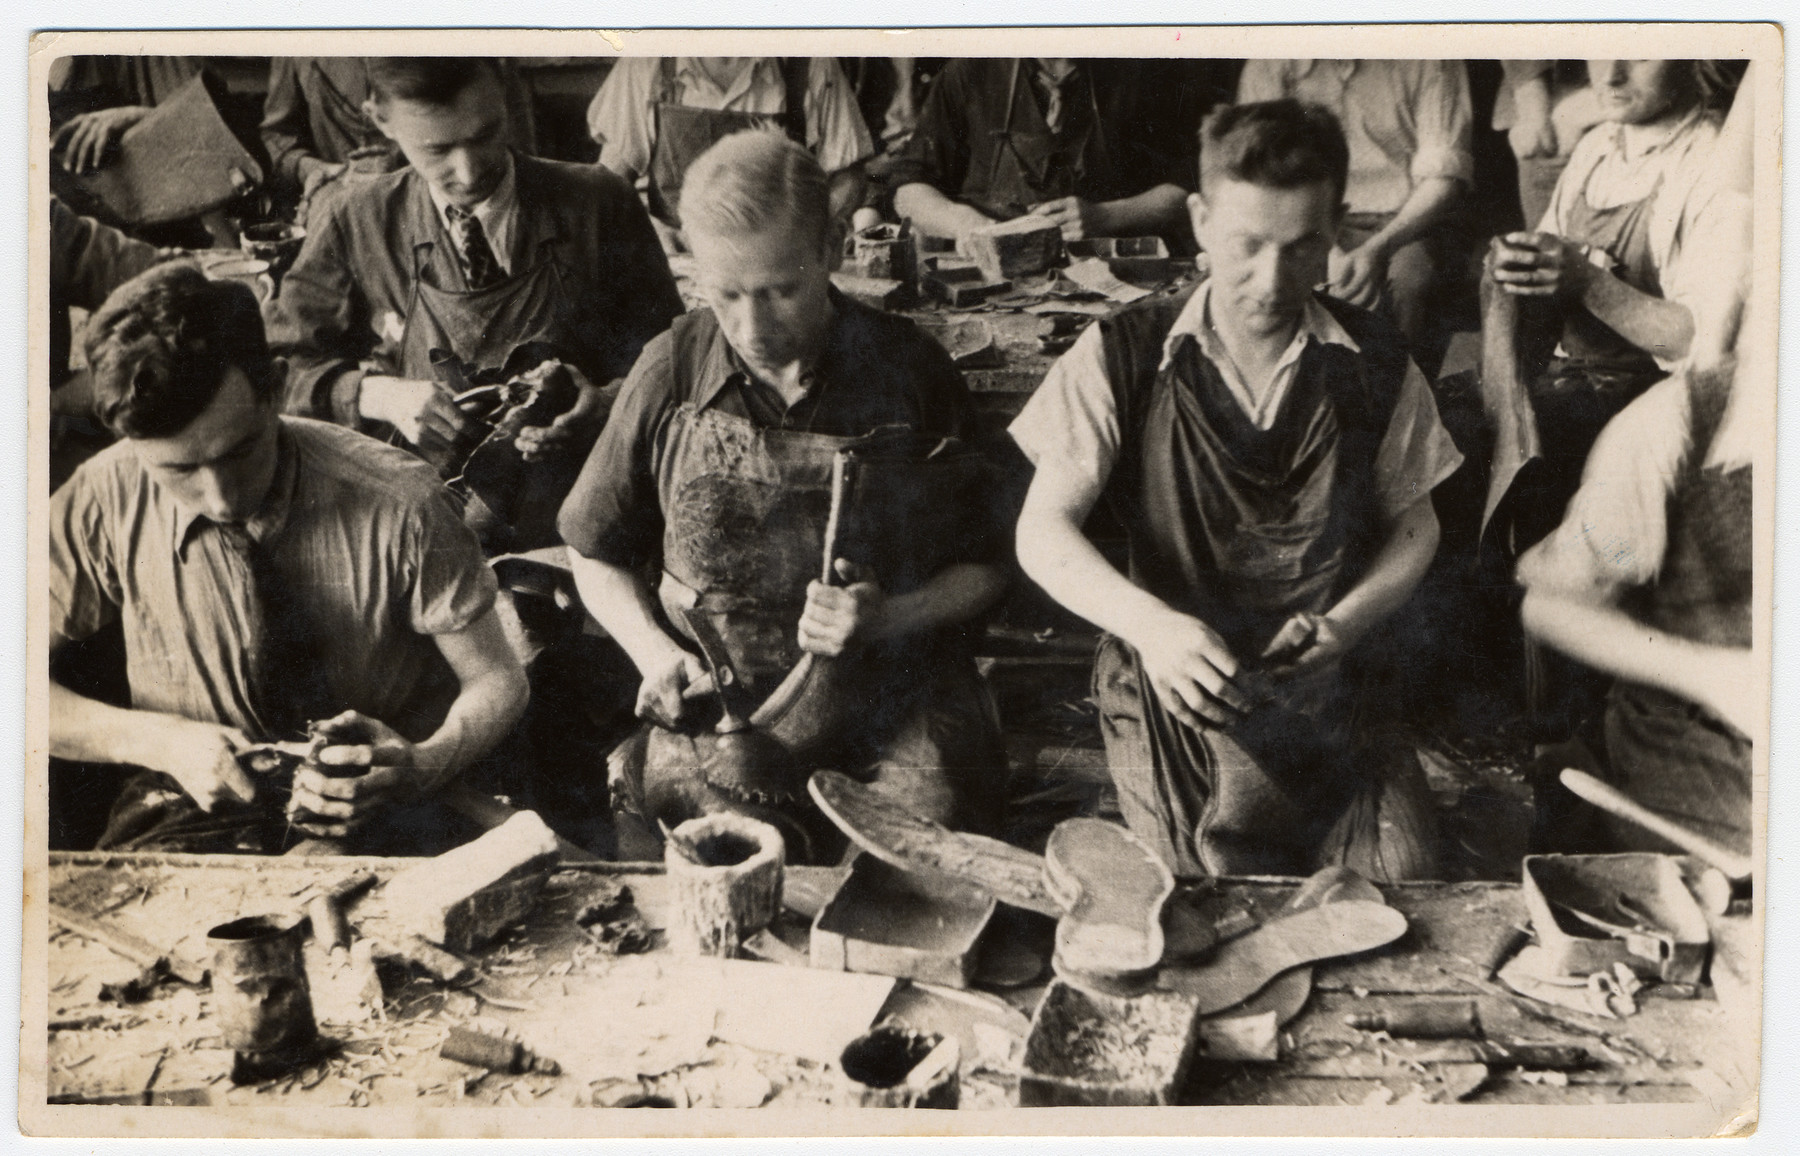 Men at work in one of the shoe factories of the Lodz ghetto.